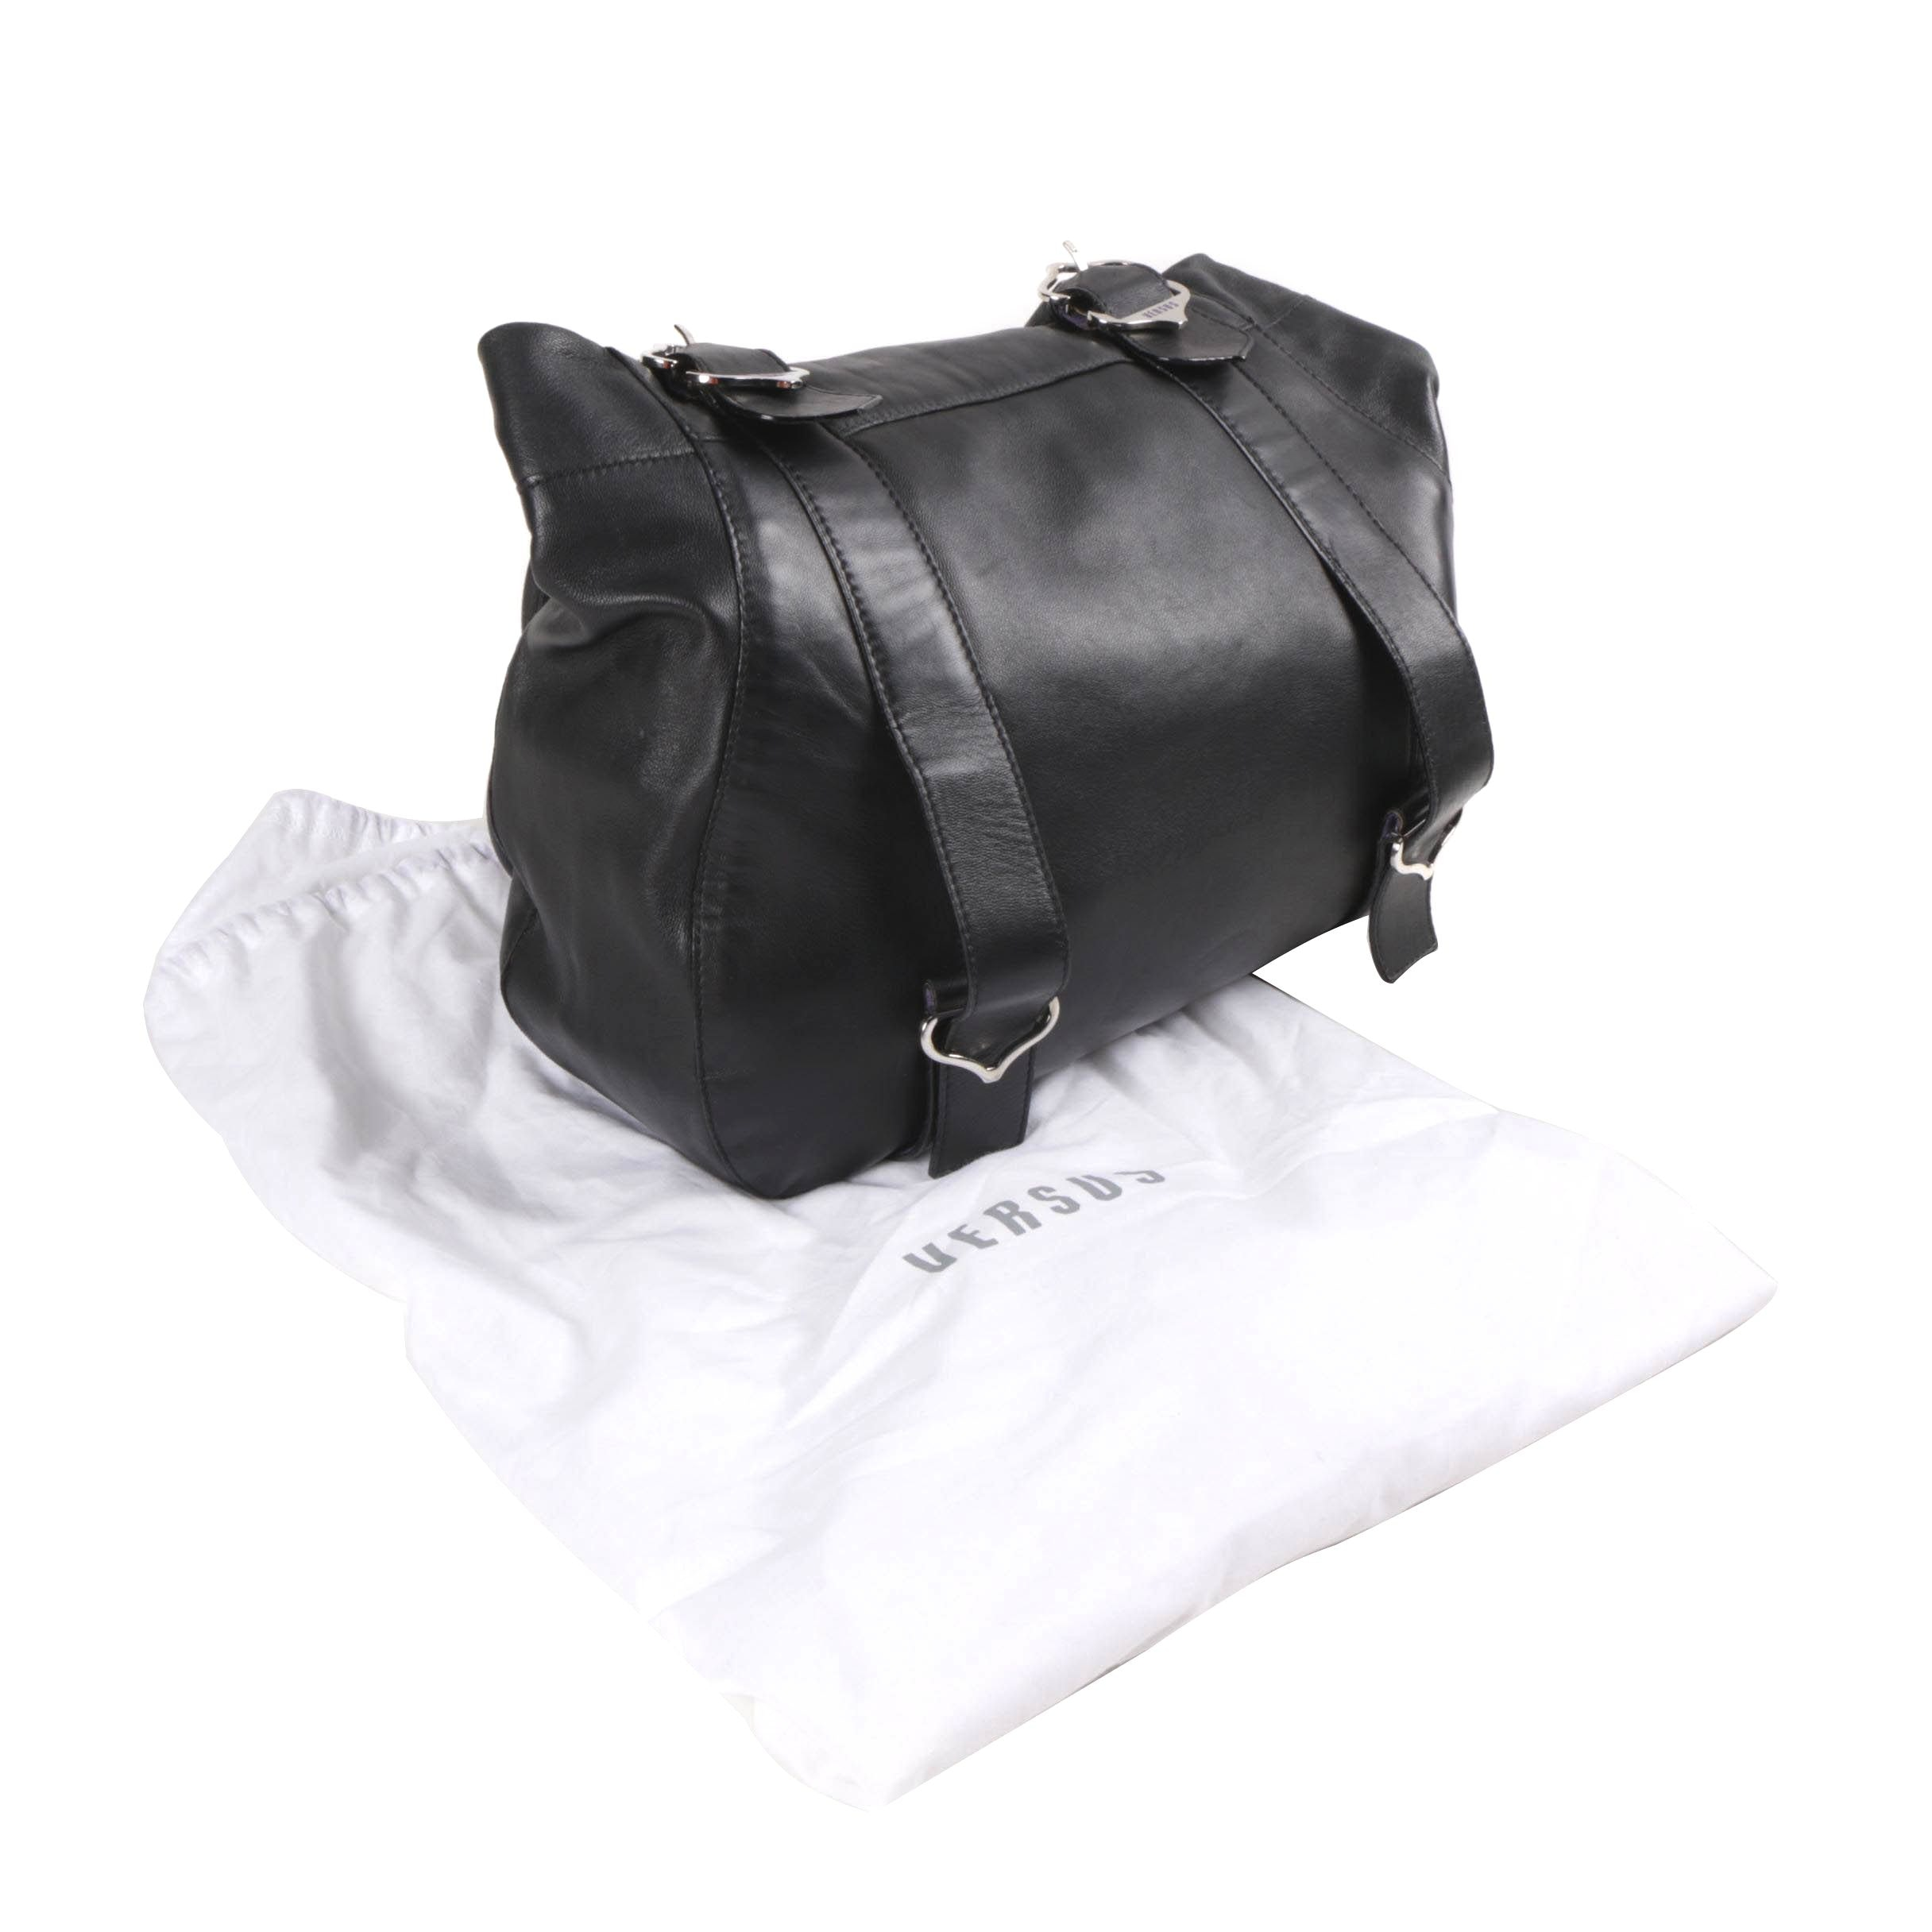 Versus Black Leather Tote Bag